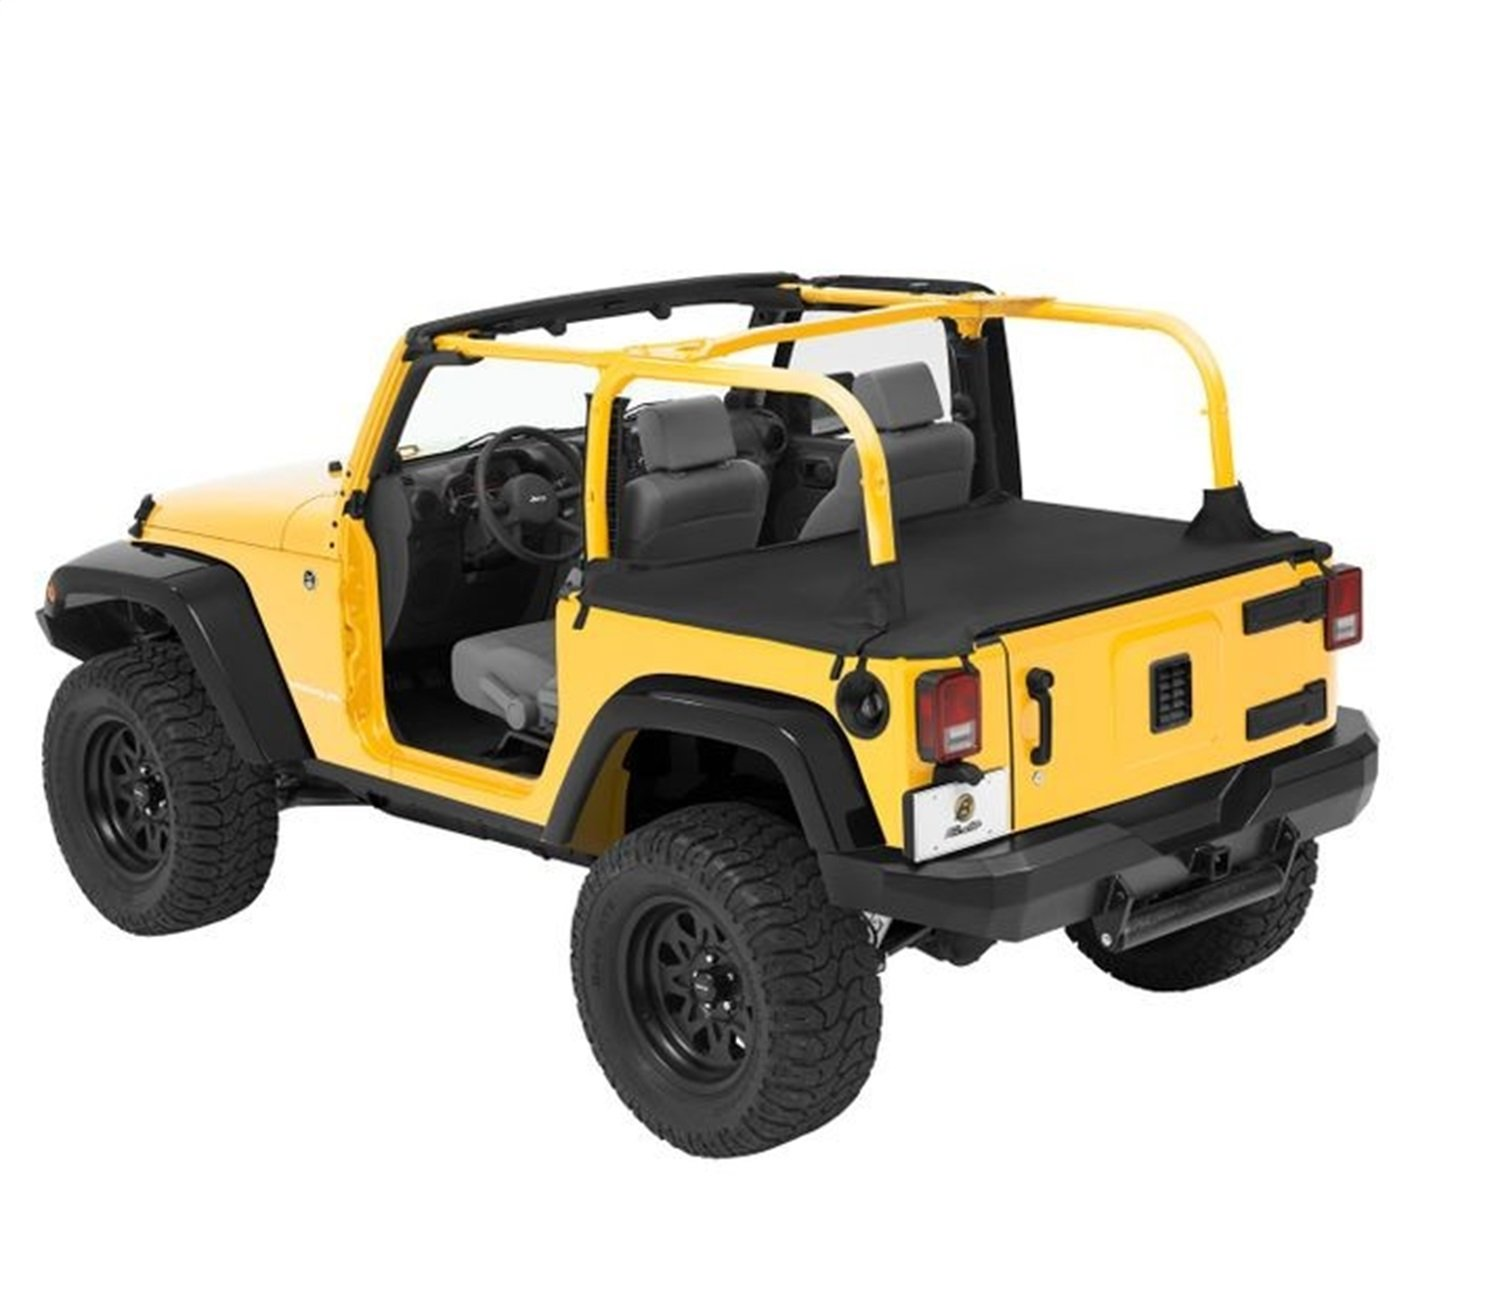 Bestop 90033-35 Black Diamond Duster Deck Cover for 2007-2018 Wrangler 2-Door (with factory soft top hardware removed)